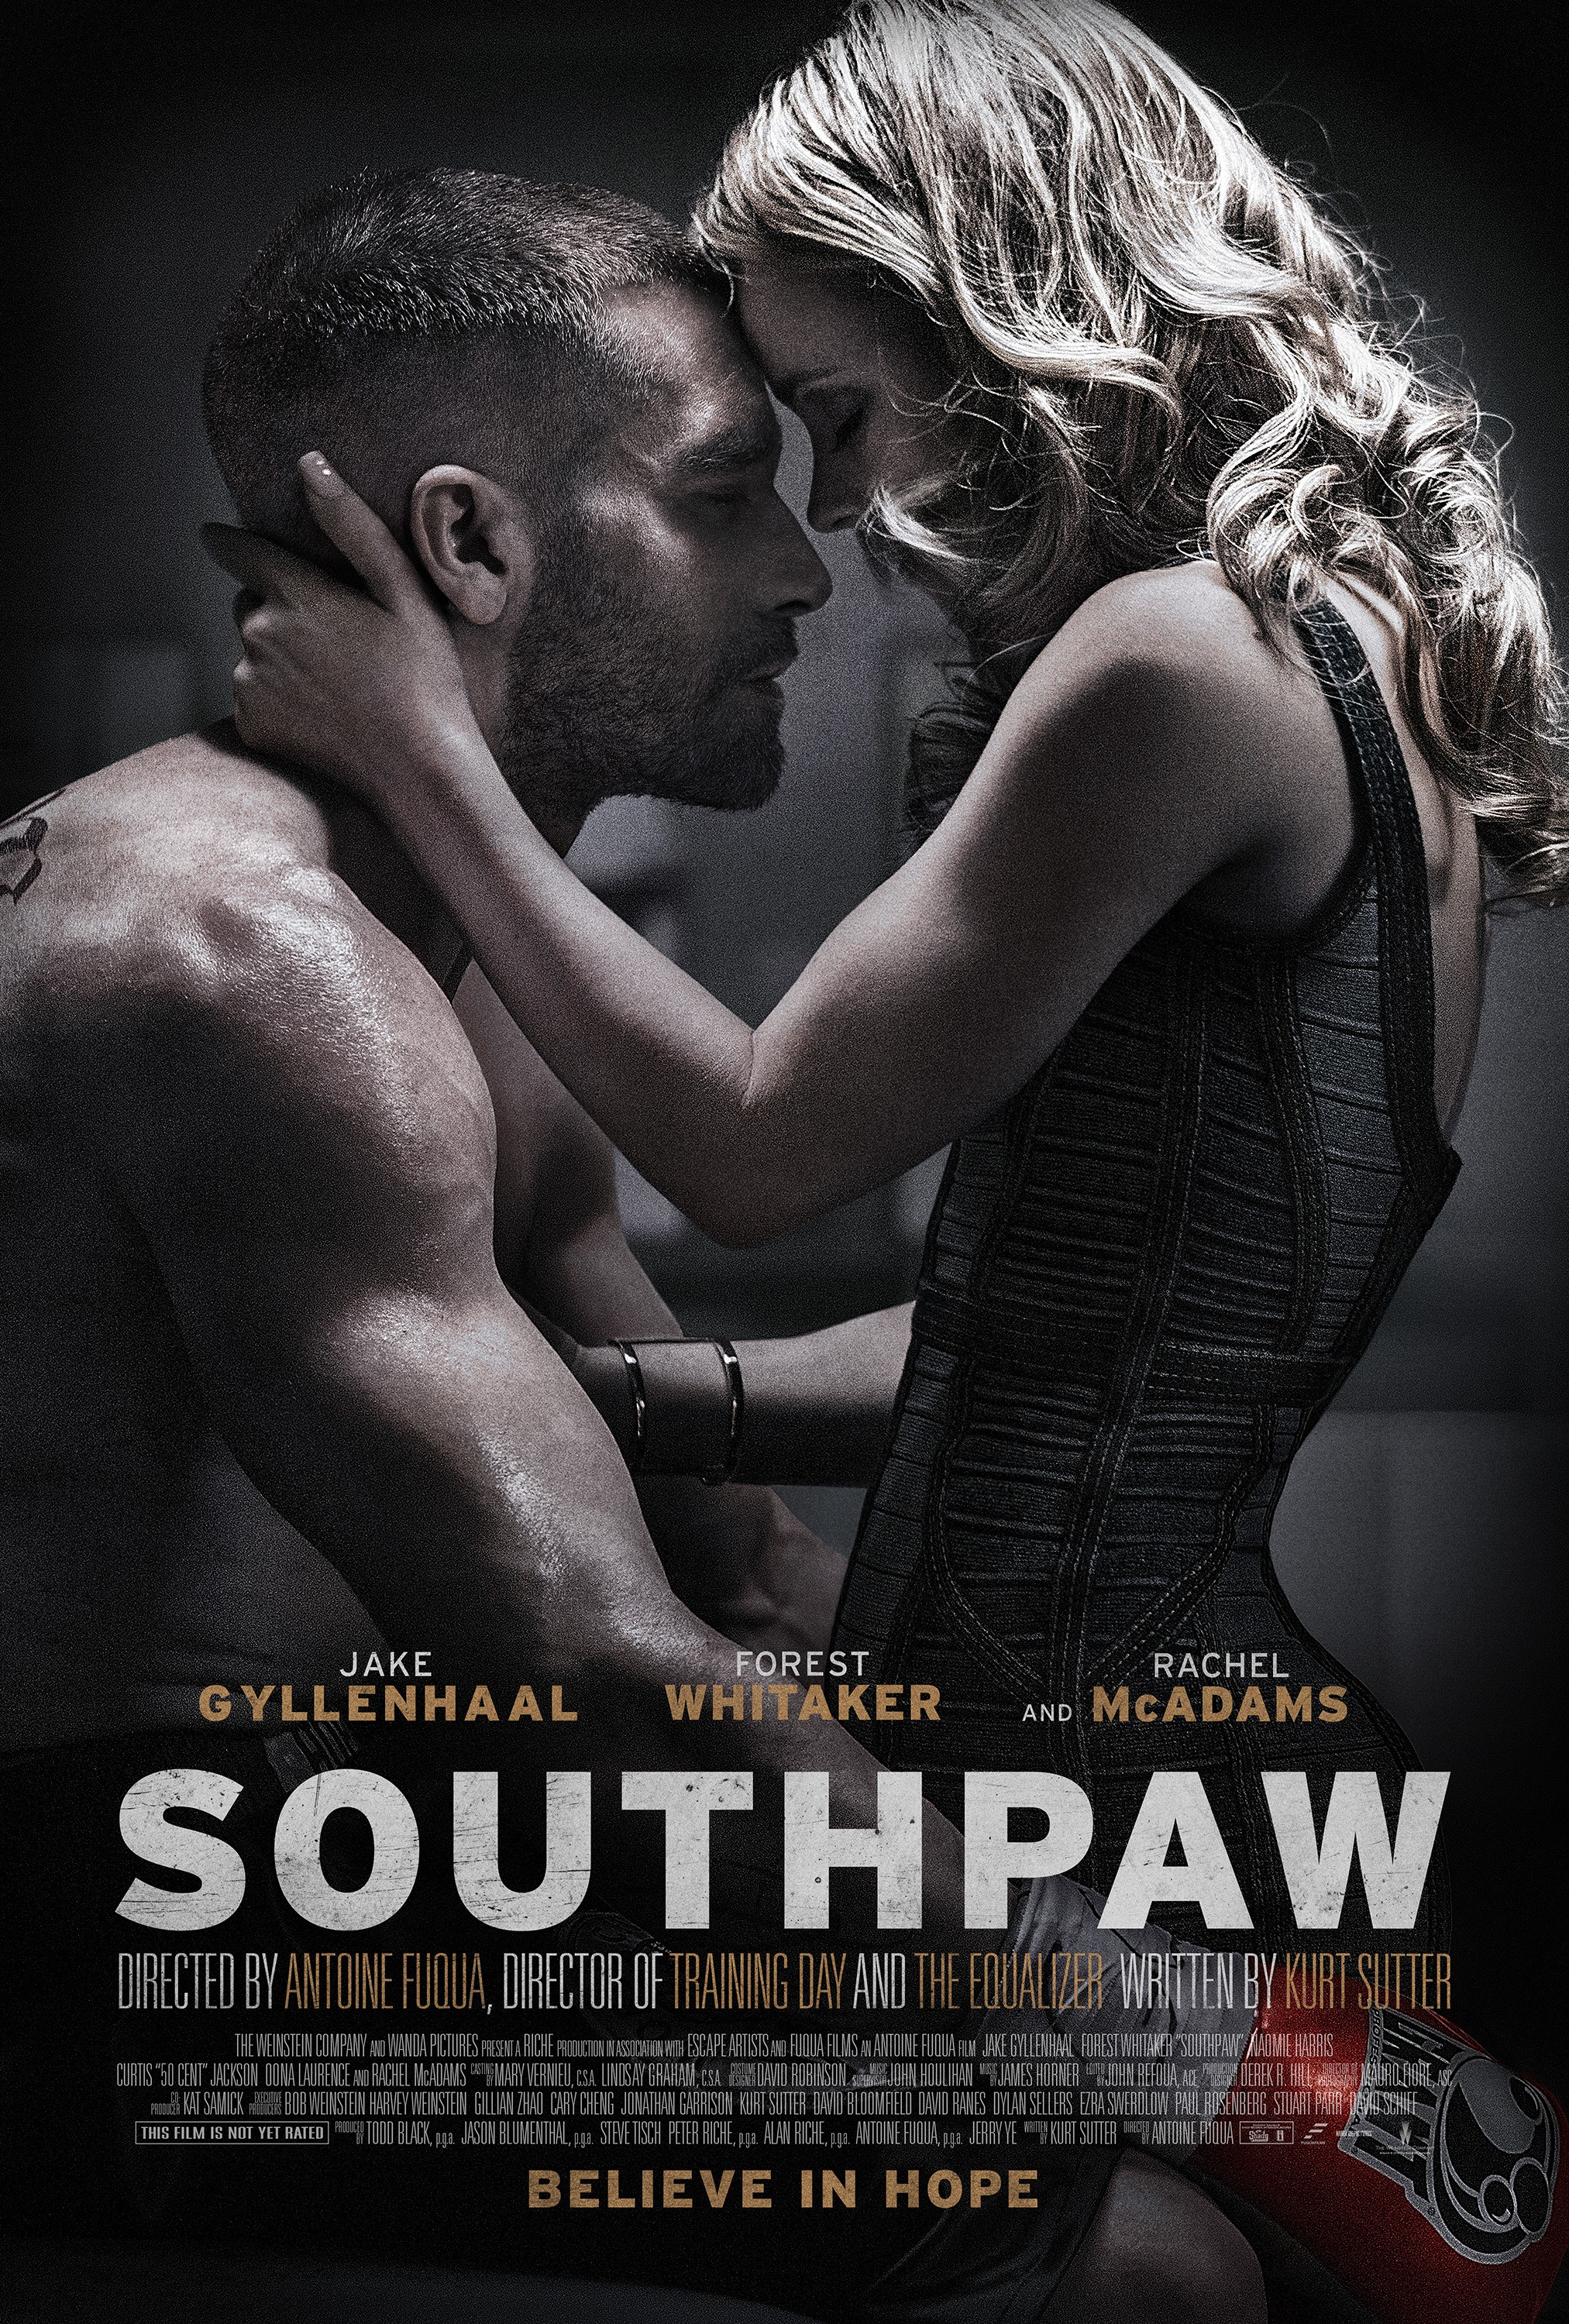 Southpaw Film The Jh Movie Collection S Official Wiki Fandom